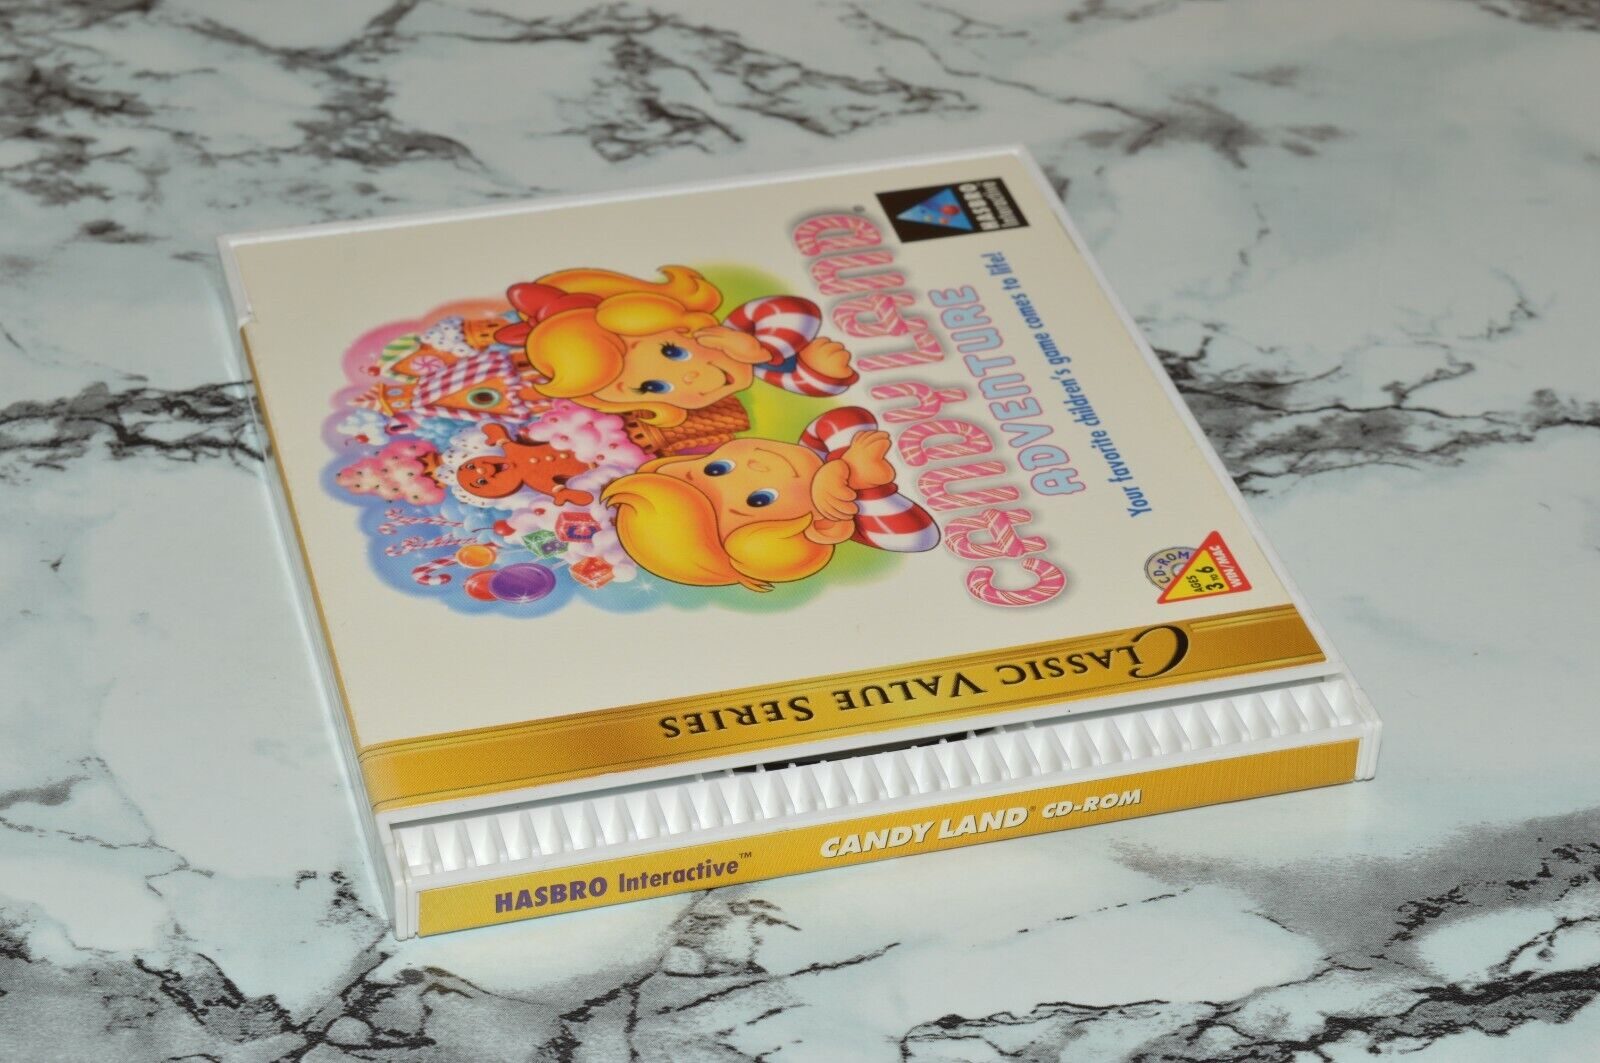 Candy Land Adventure - Classic Value Series PC CD-ROM -- Hasbro Interactive - $11.18